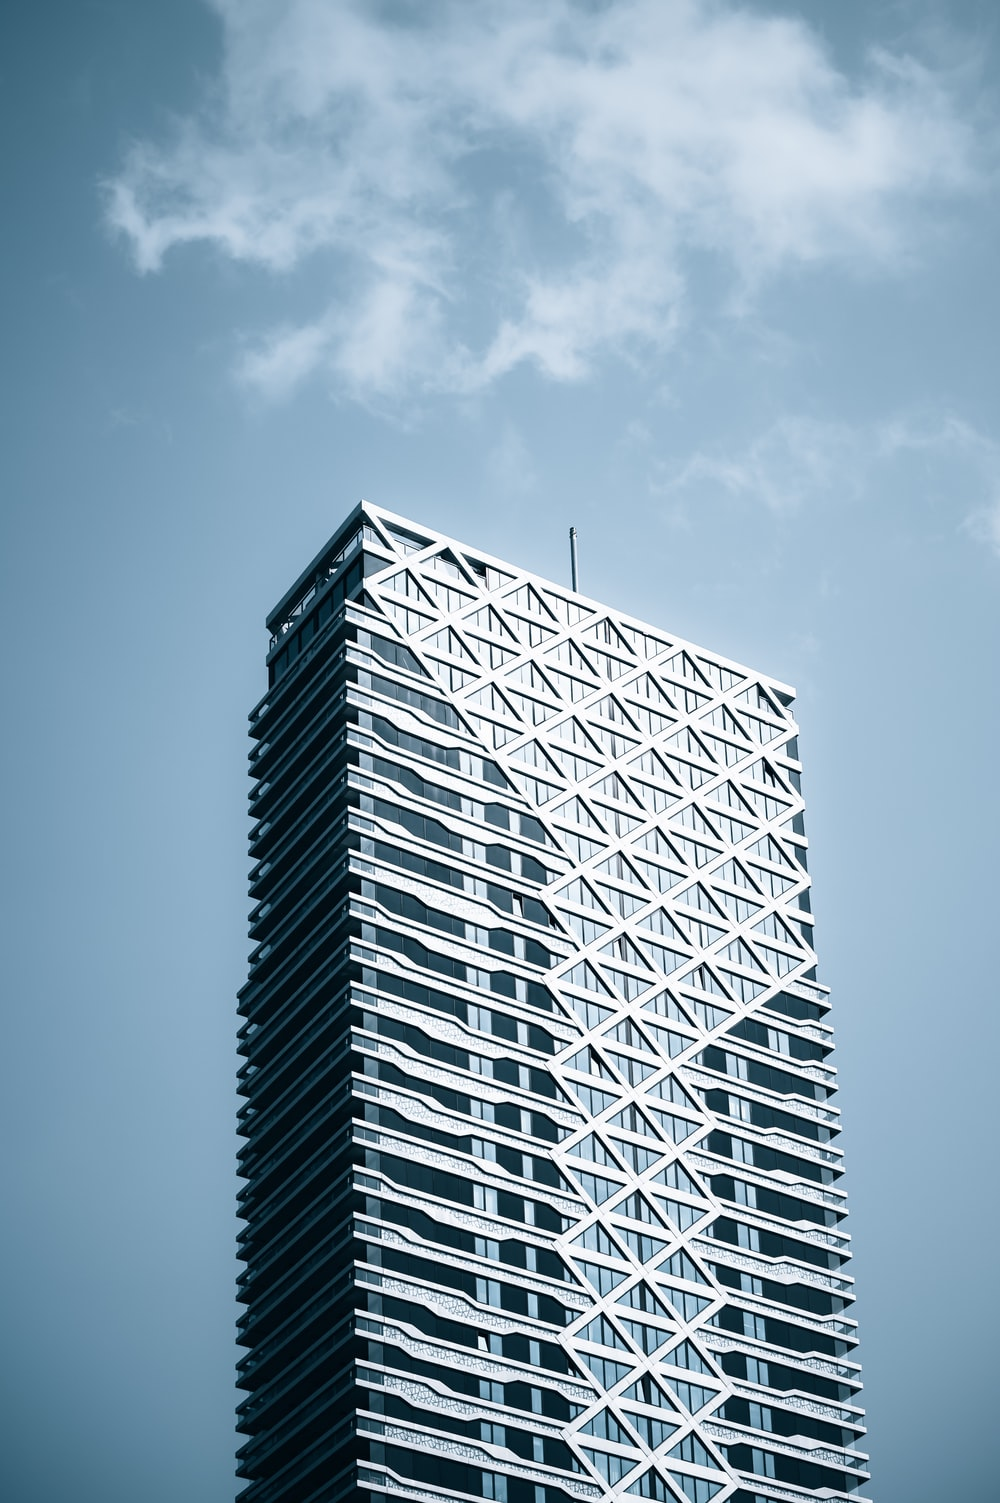 white and black building under blue sky during daytime